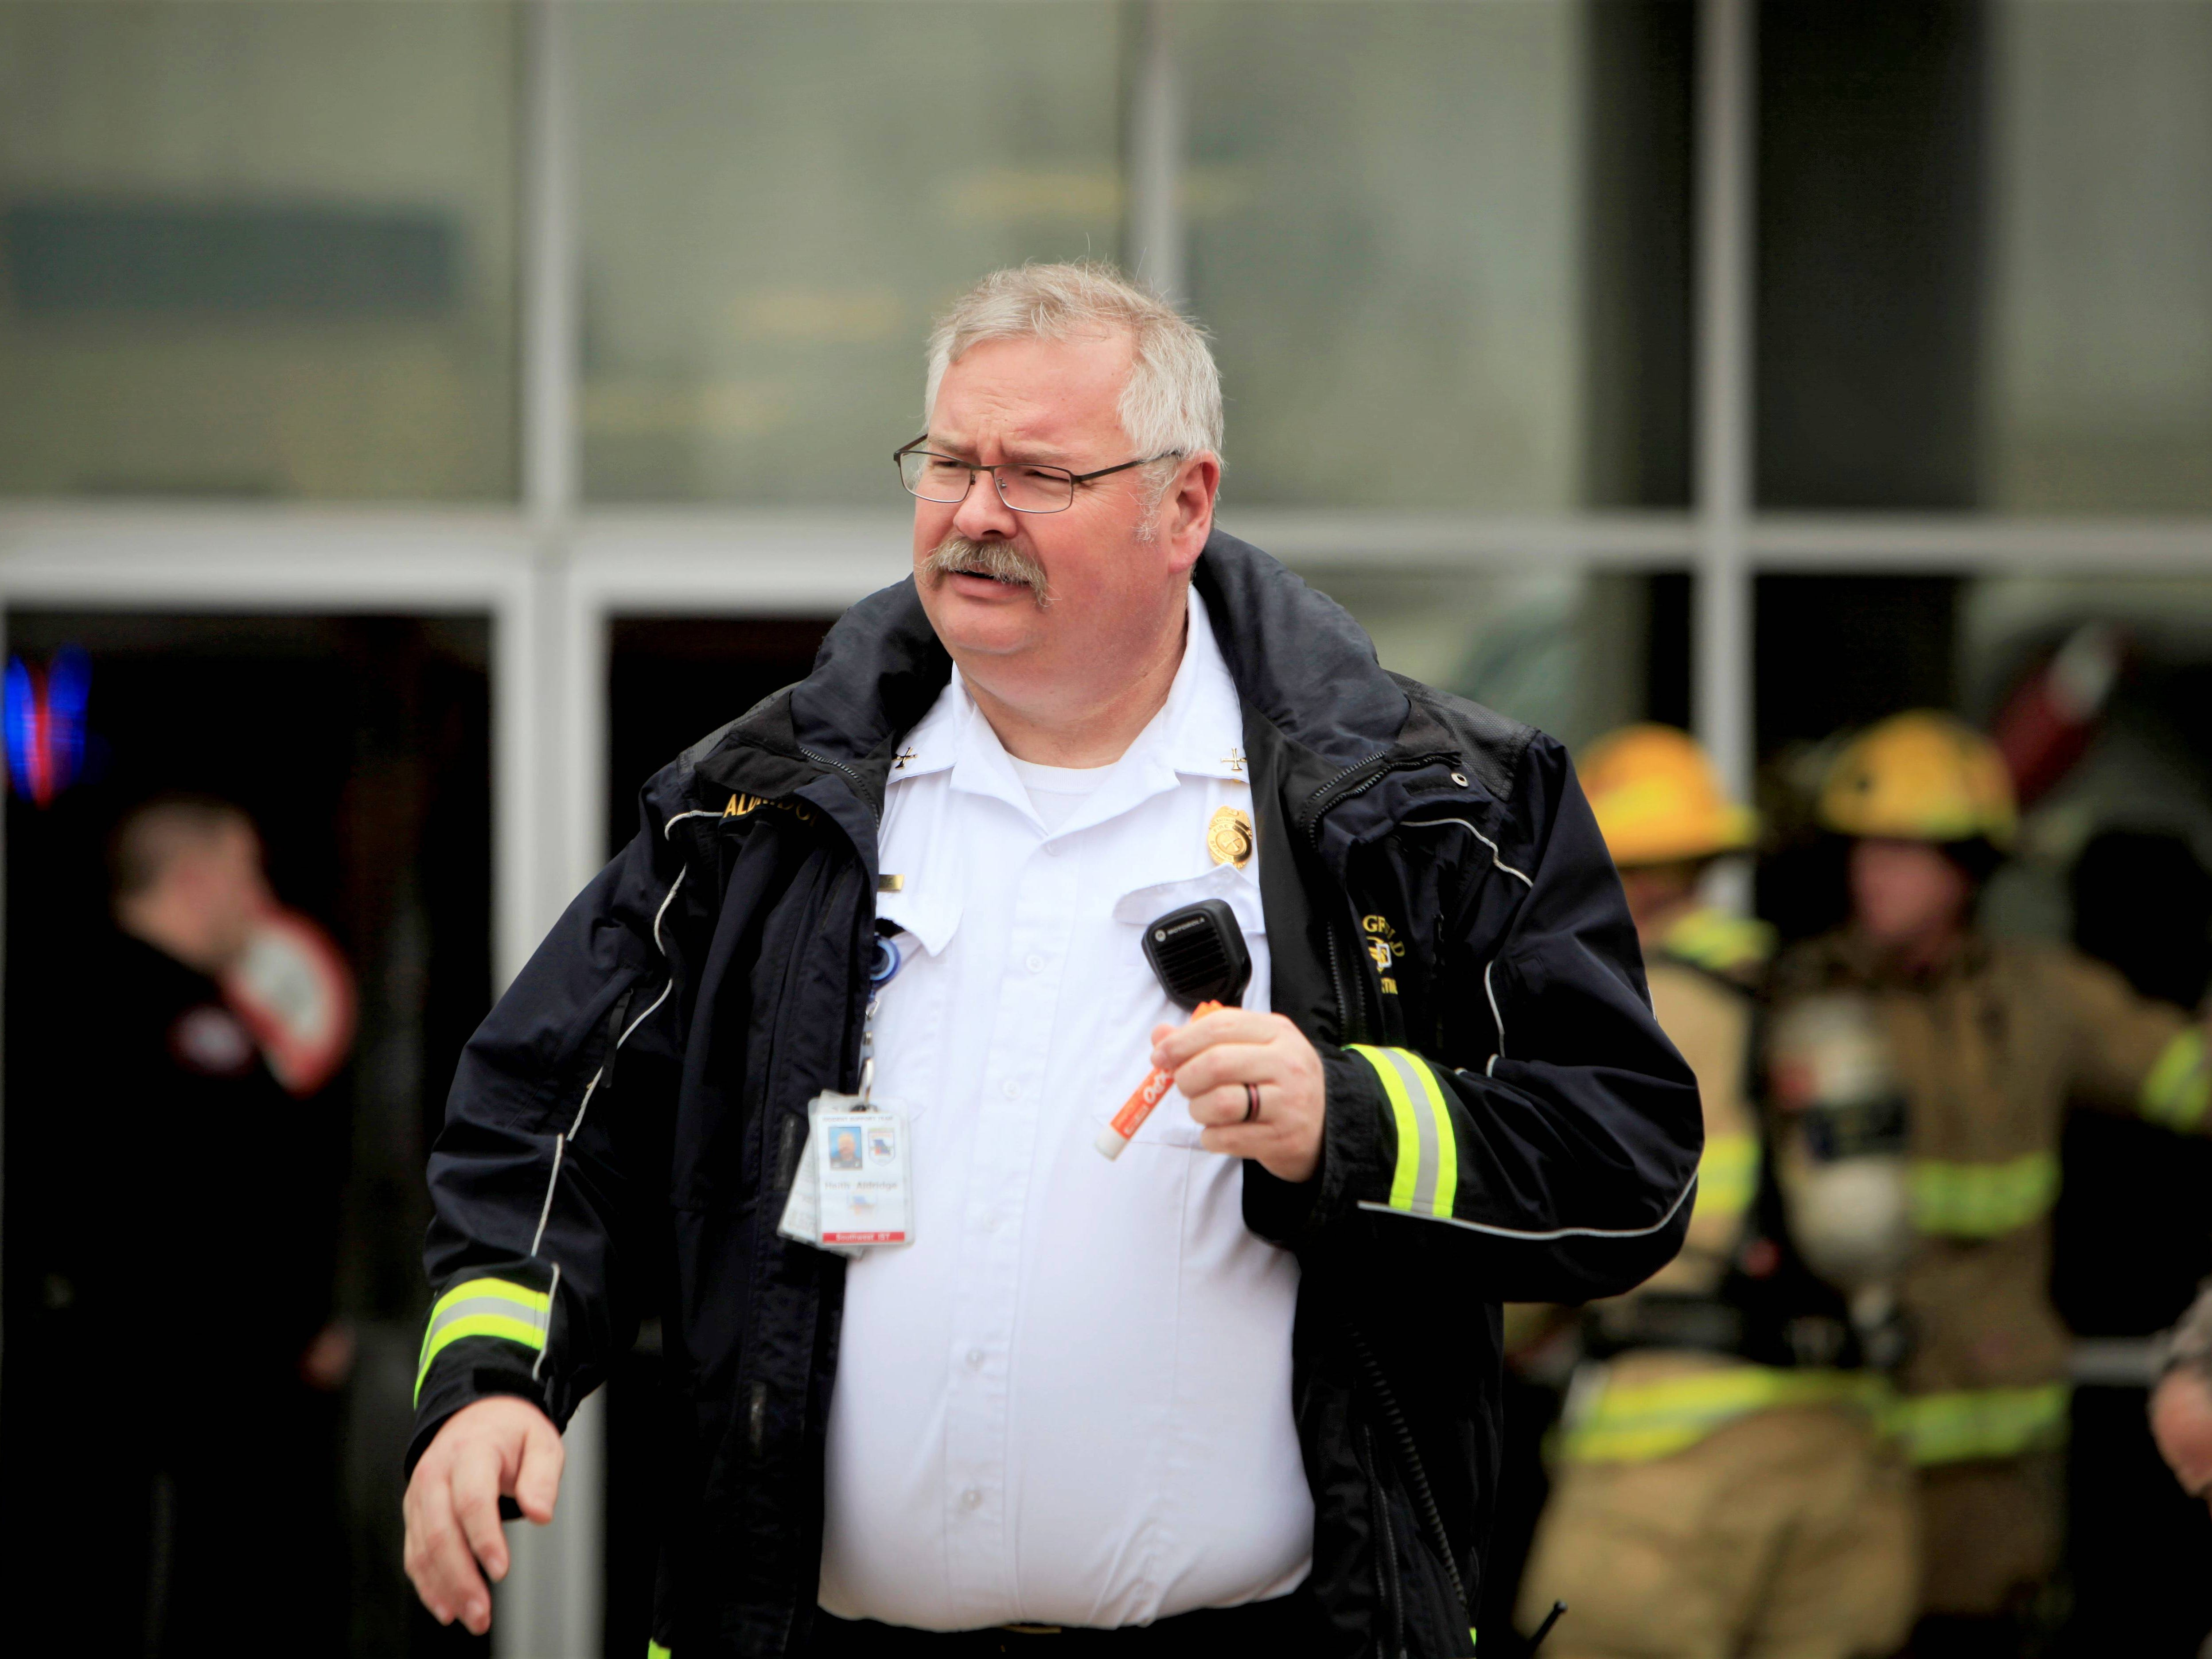 Springfield Fire Battalion Chief Heith Aldridge said the smoke may have came from an elevator's heater motor.